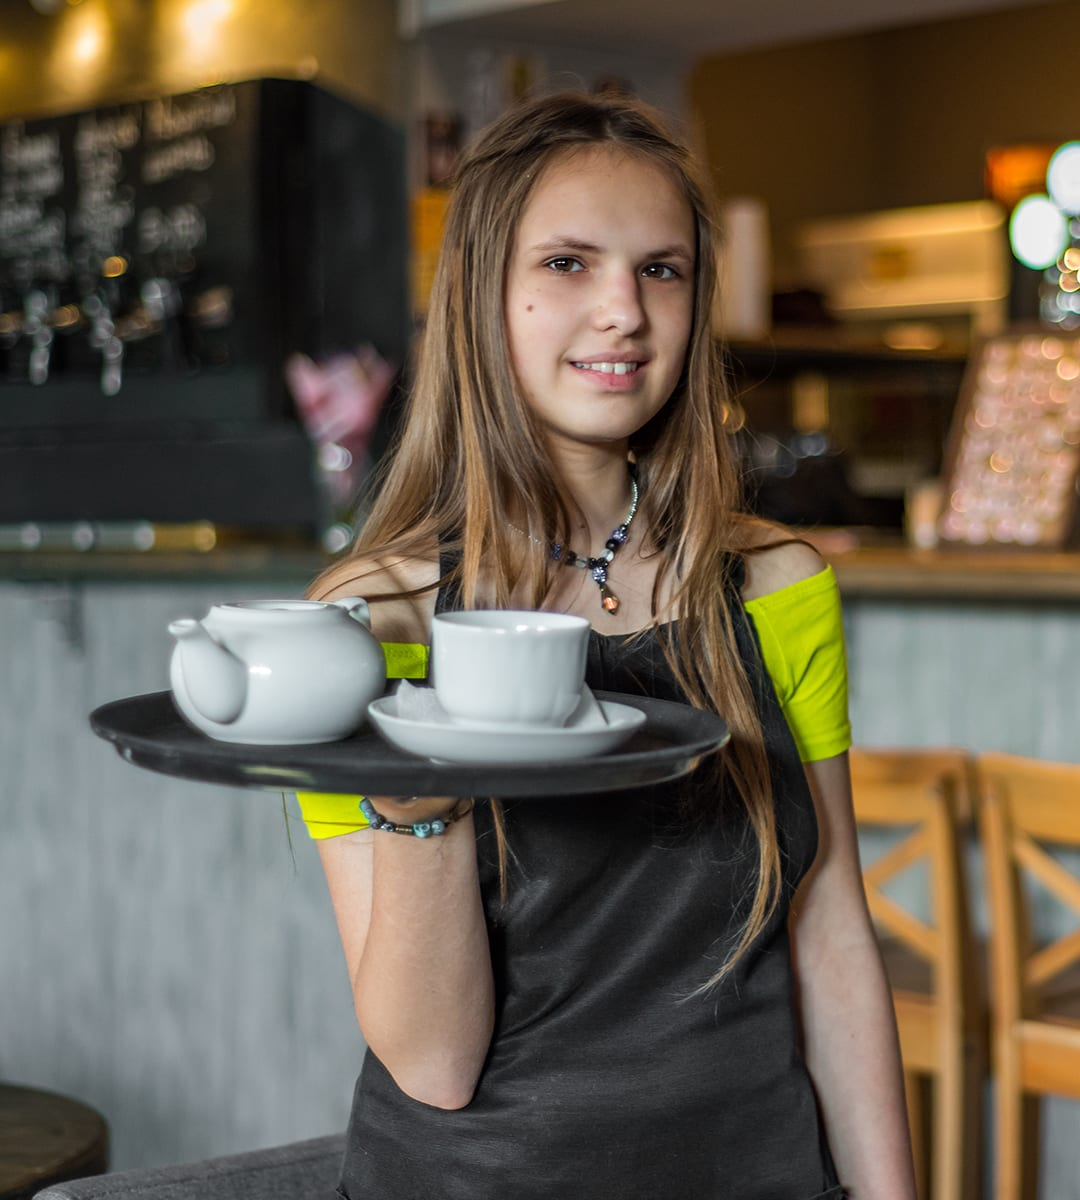 A young woman working in a coffee shop thanks to support from Opportunity and Change